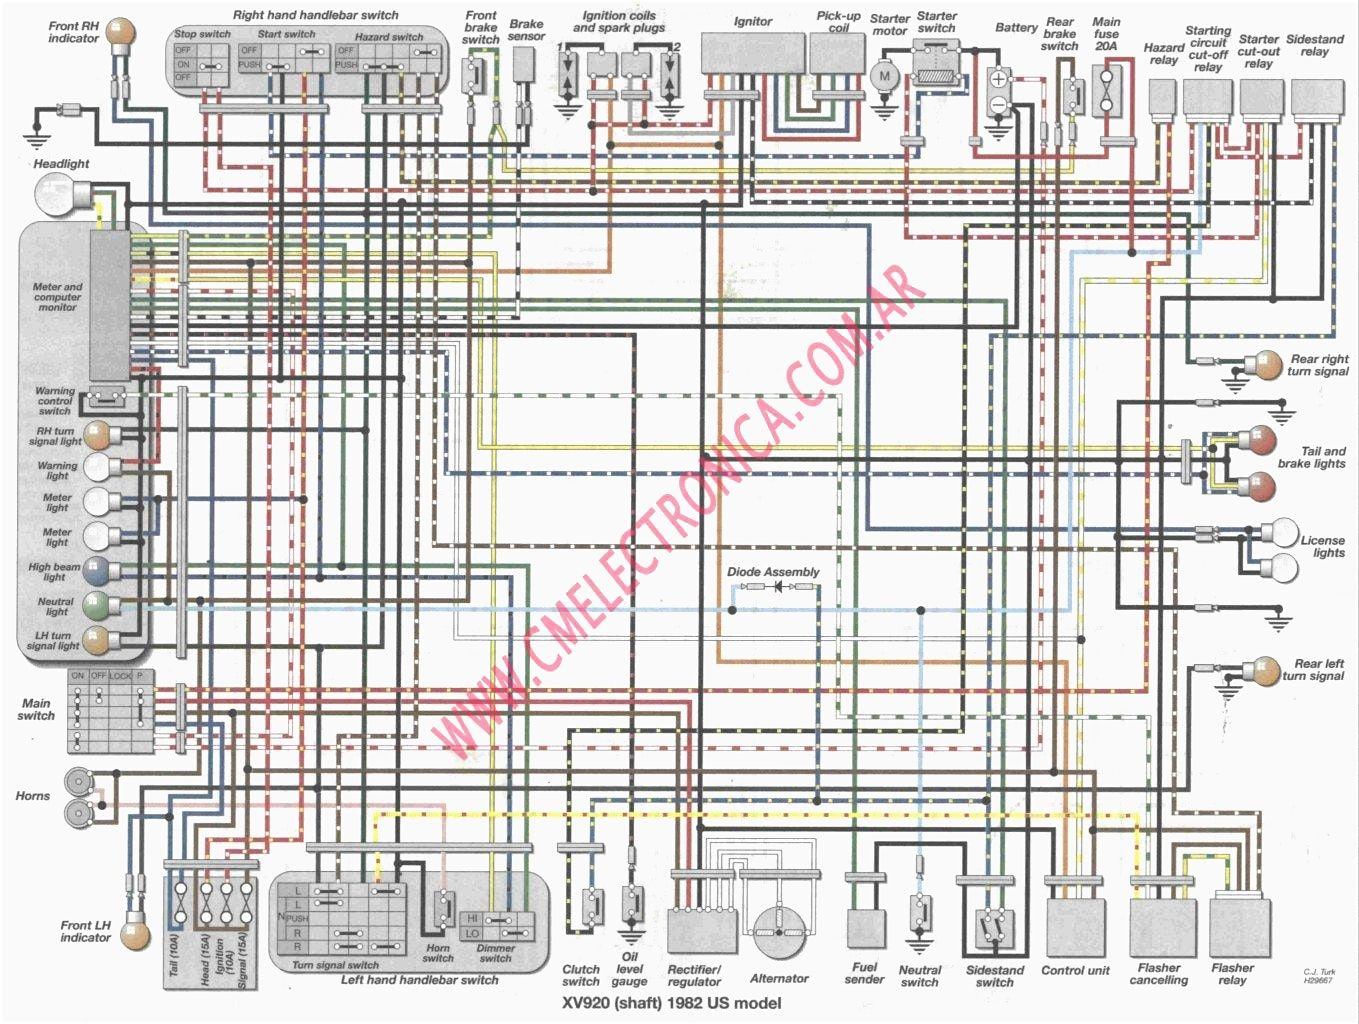 small resolution of diagrams 15341278 xv250 wiring diagram yamaha virago 250 inside new